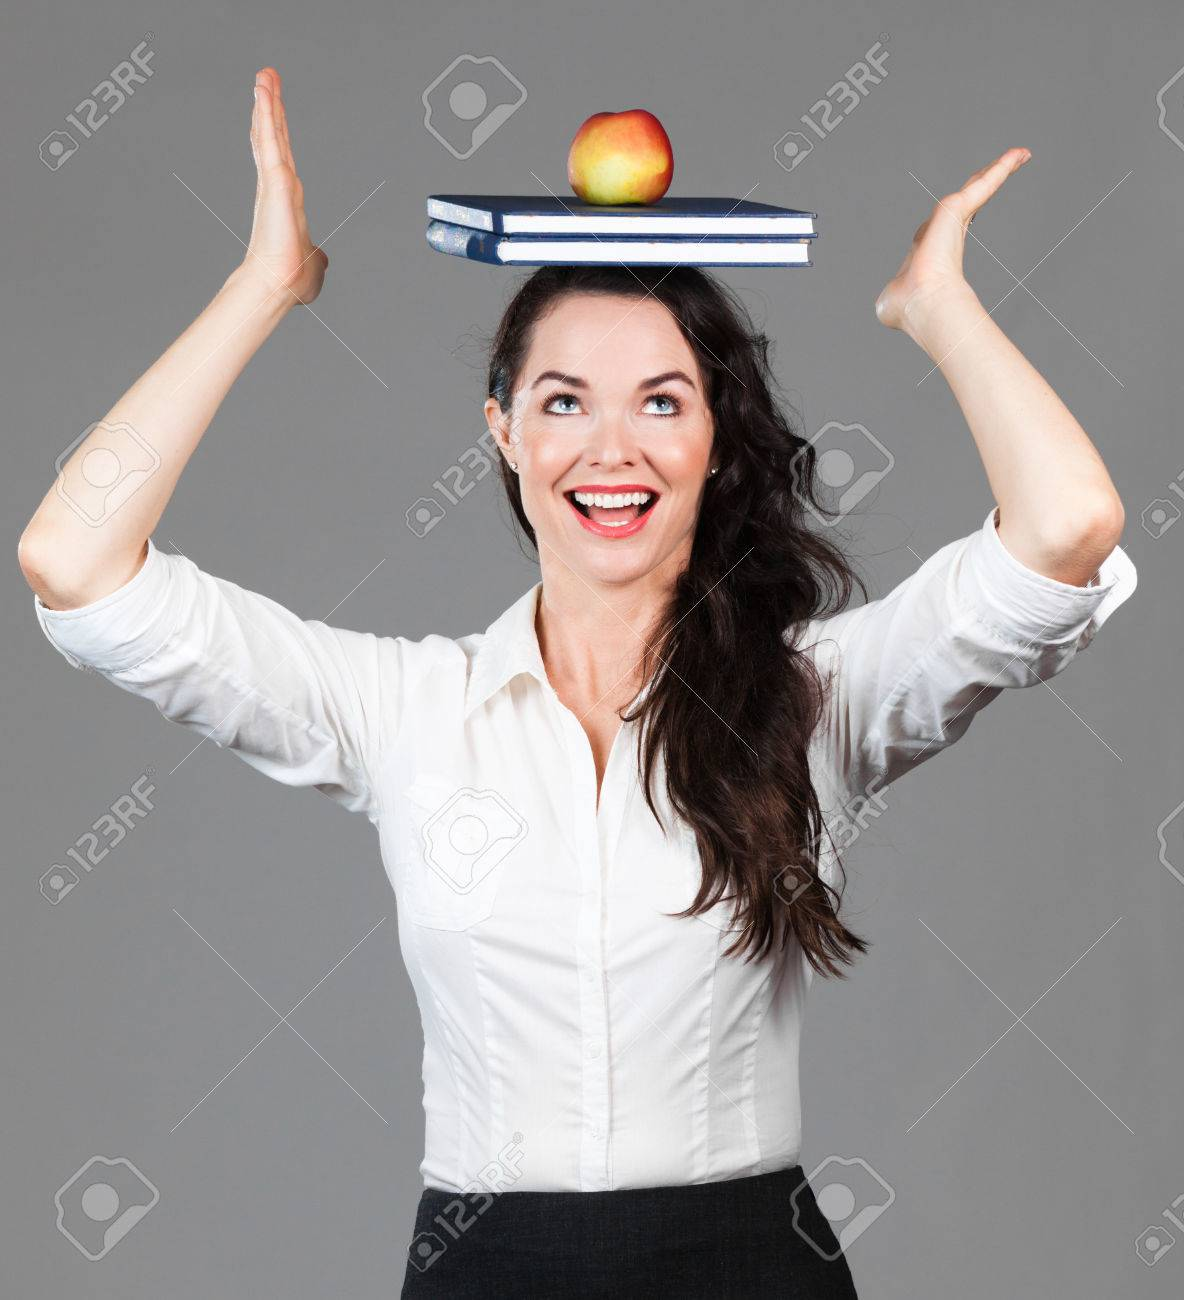 A happy beautiful business woman balancing books and an apple on her head Stock Photo - 26901005